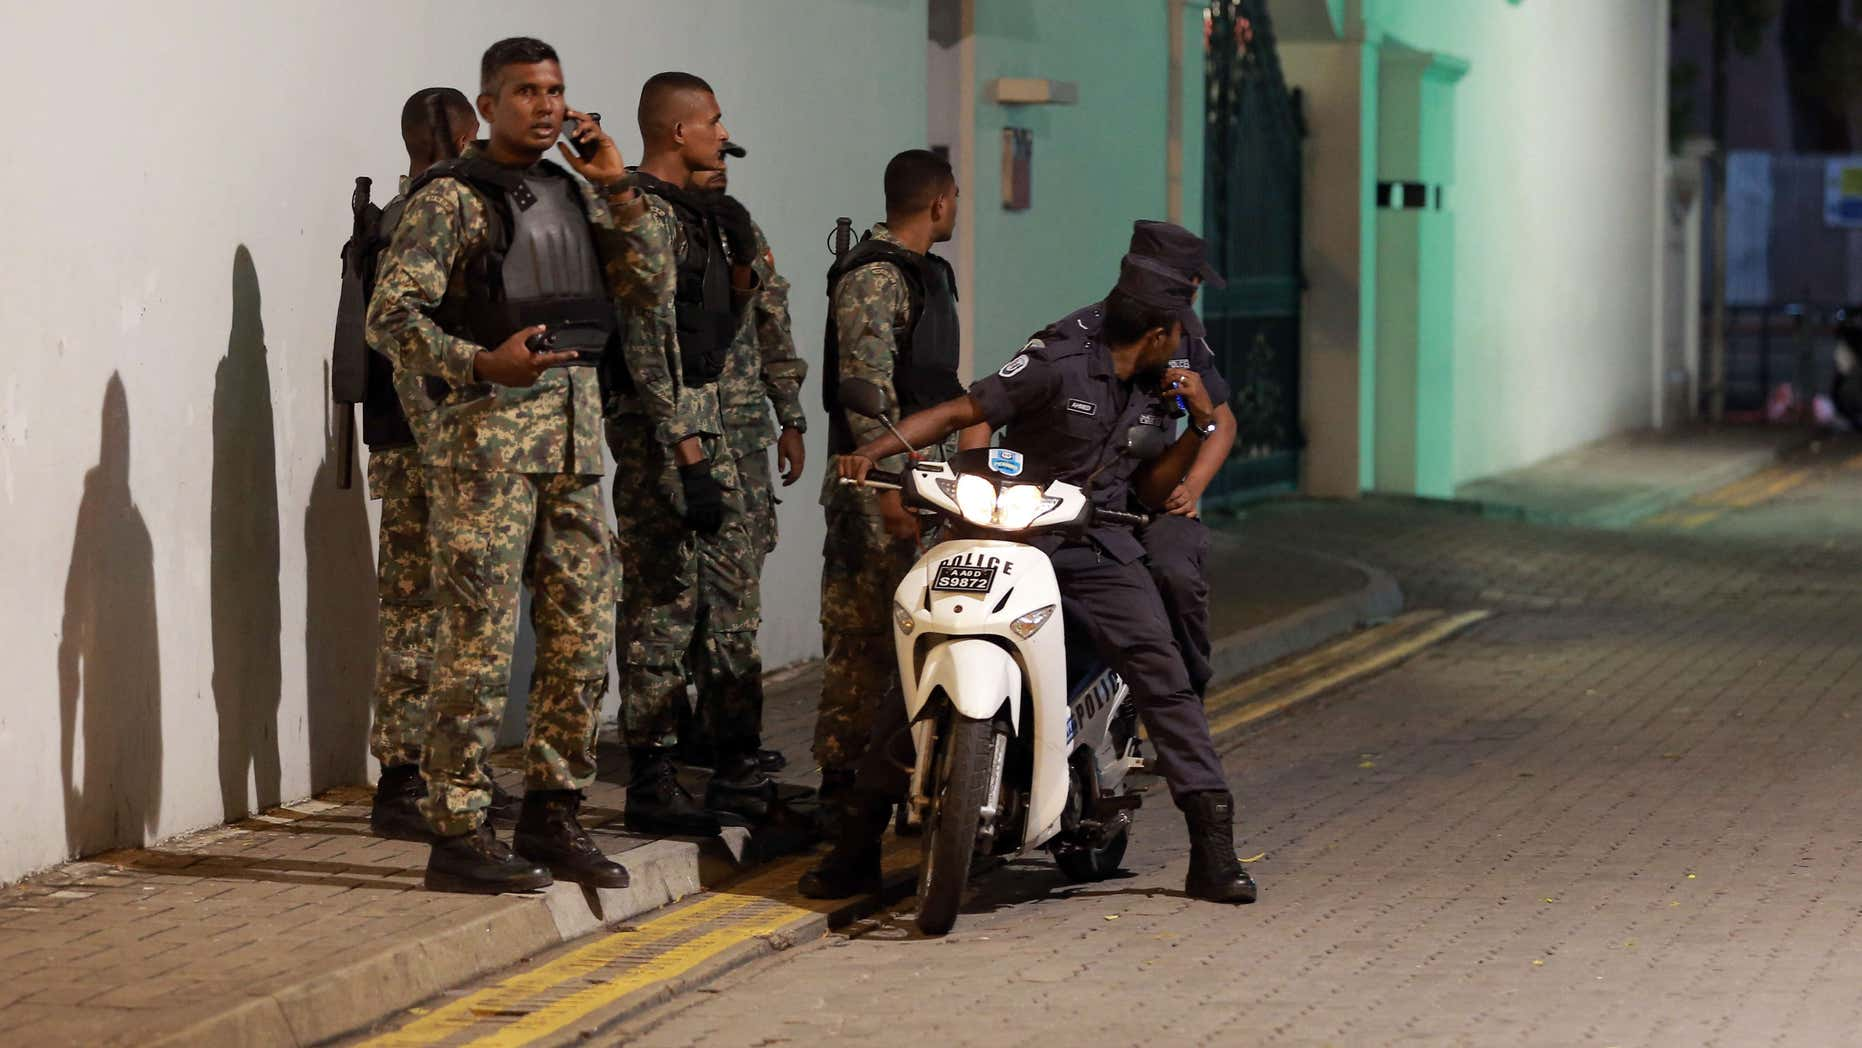 Nov. 2, 2015: Maldivian security officers stand guard near the president's official residence where the military found and deactivated an explosive device in Male, Maldives.